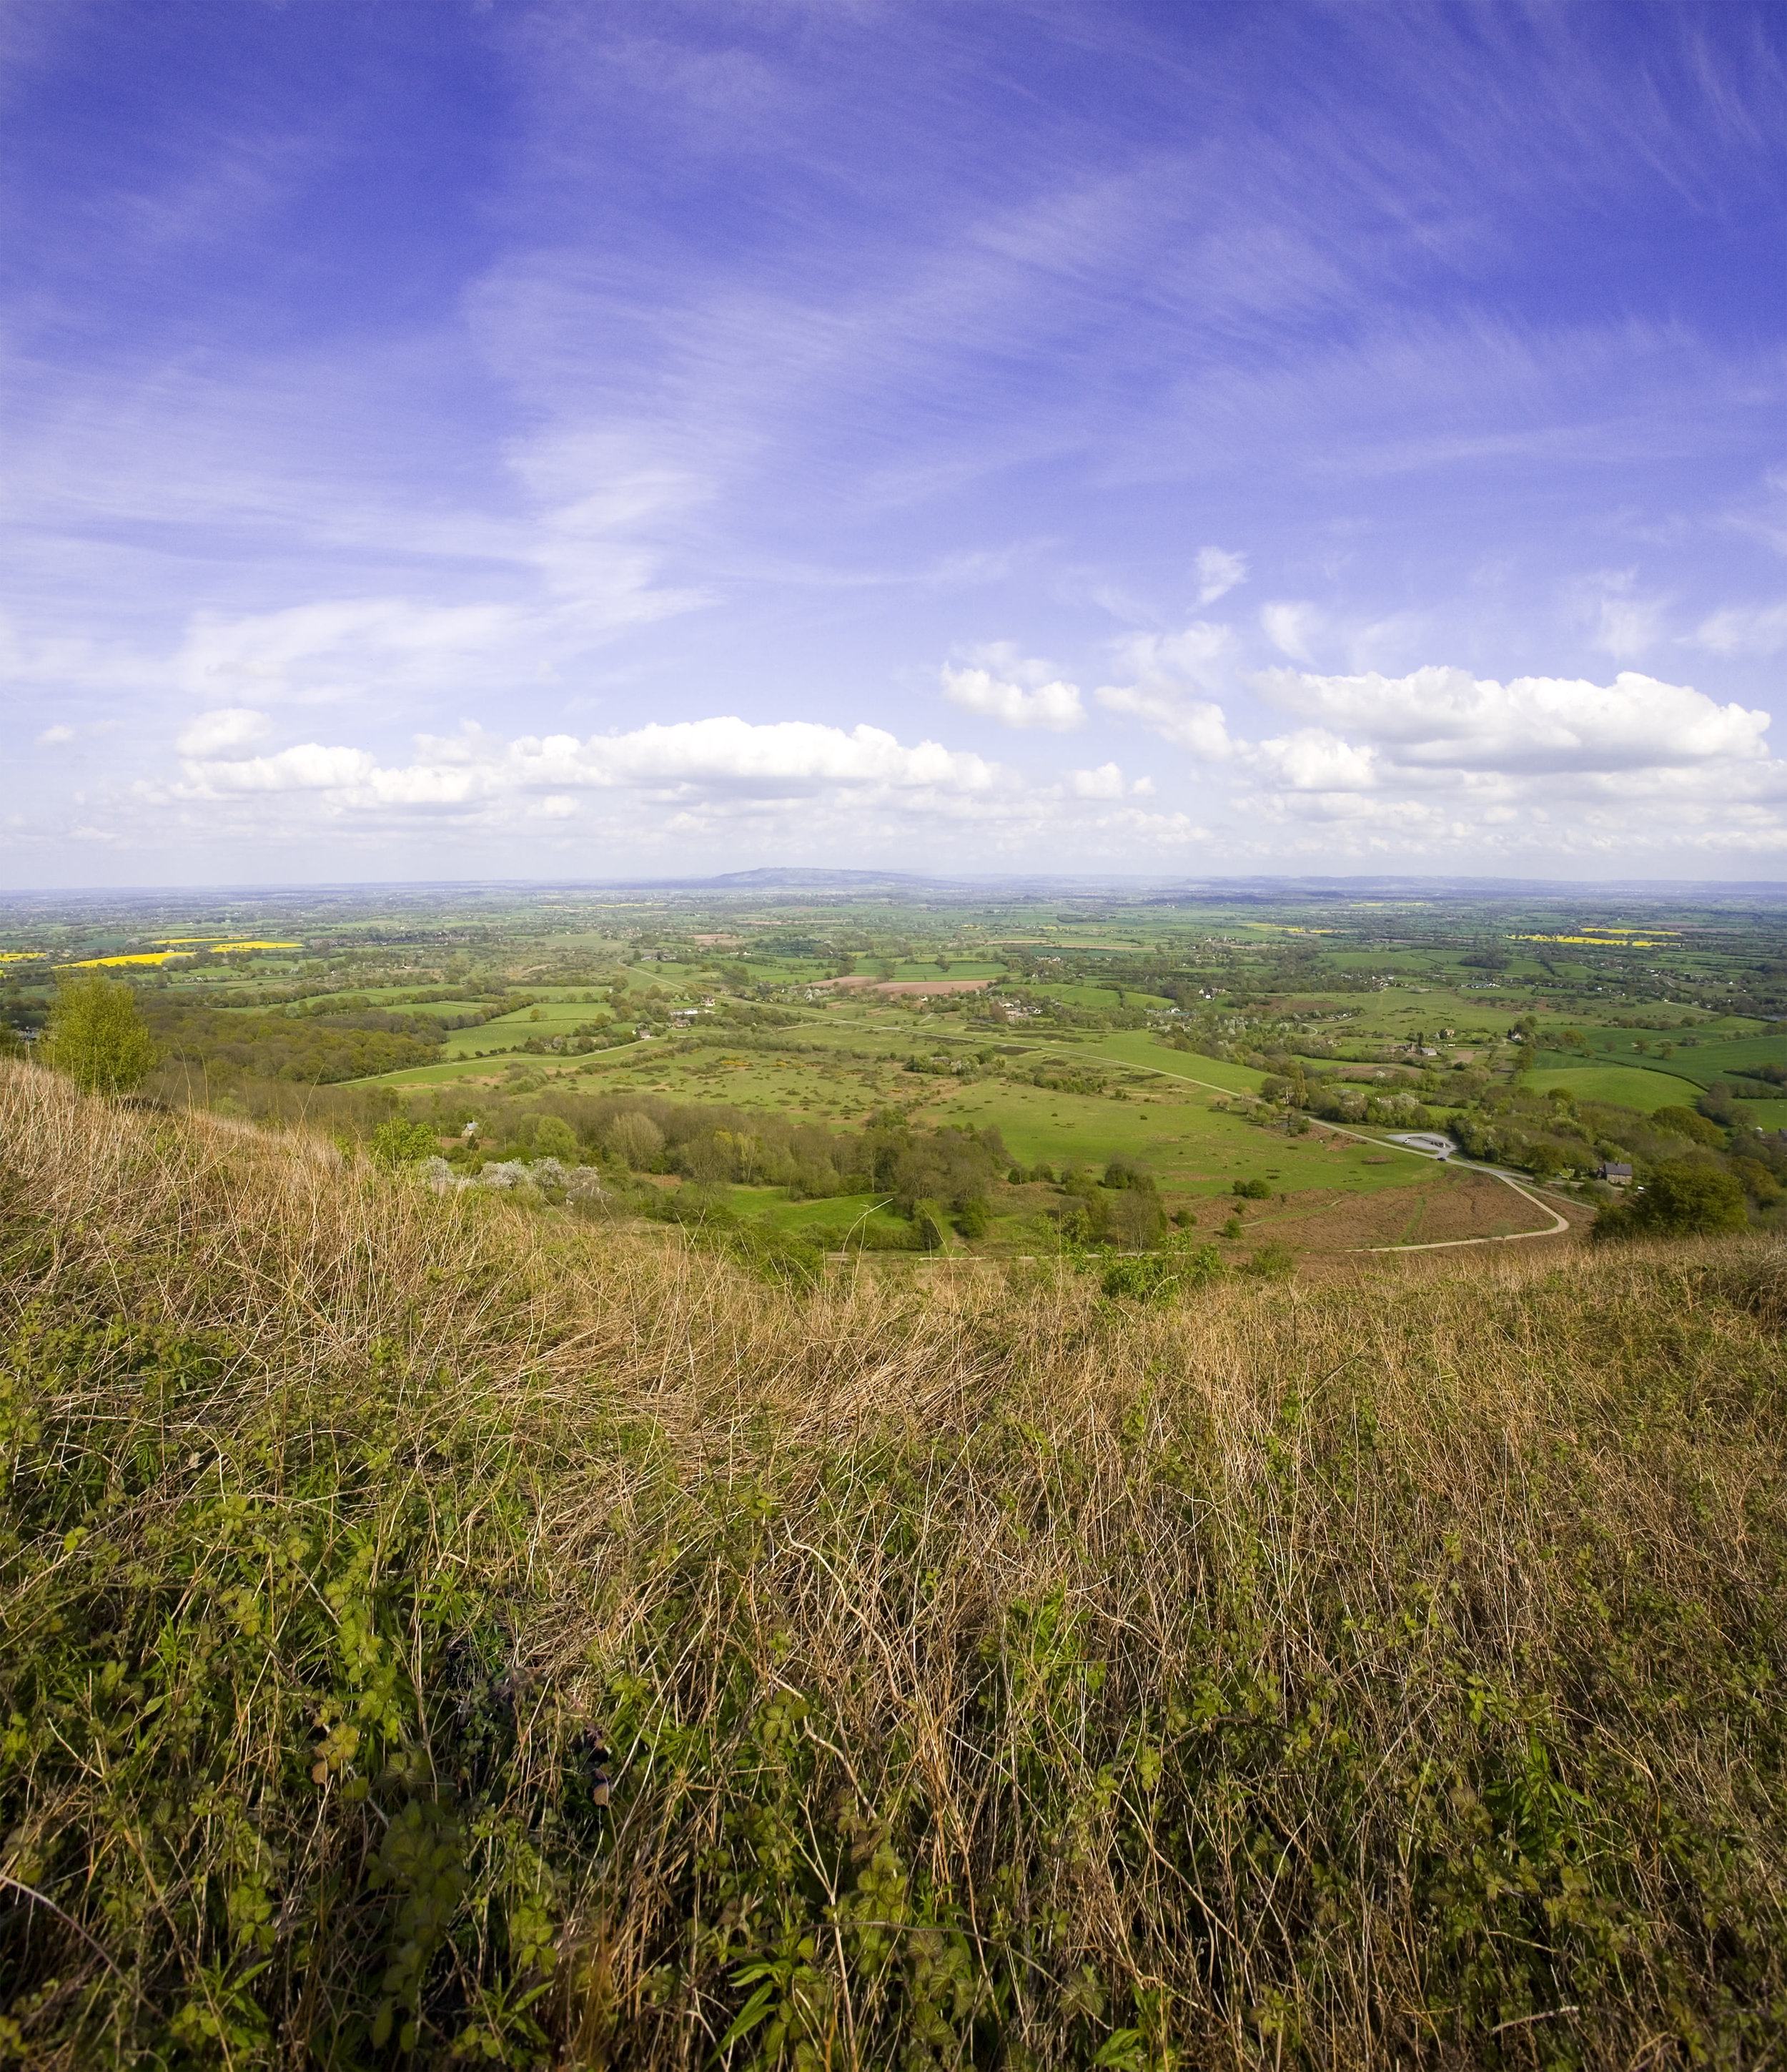 View from the ridge of the Malvern Hills Worcestershire Herefordshire English Midlands England UK